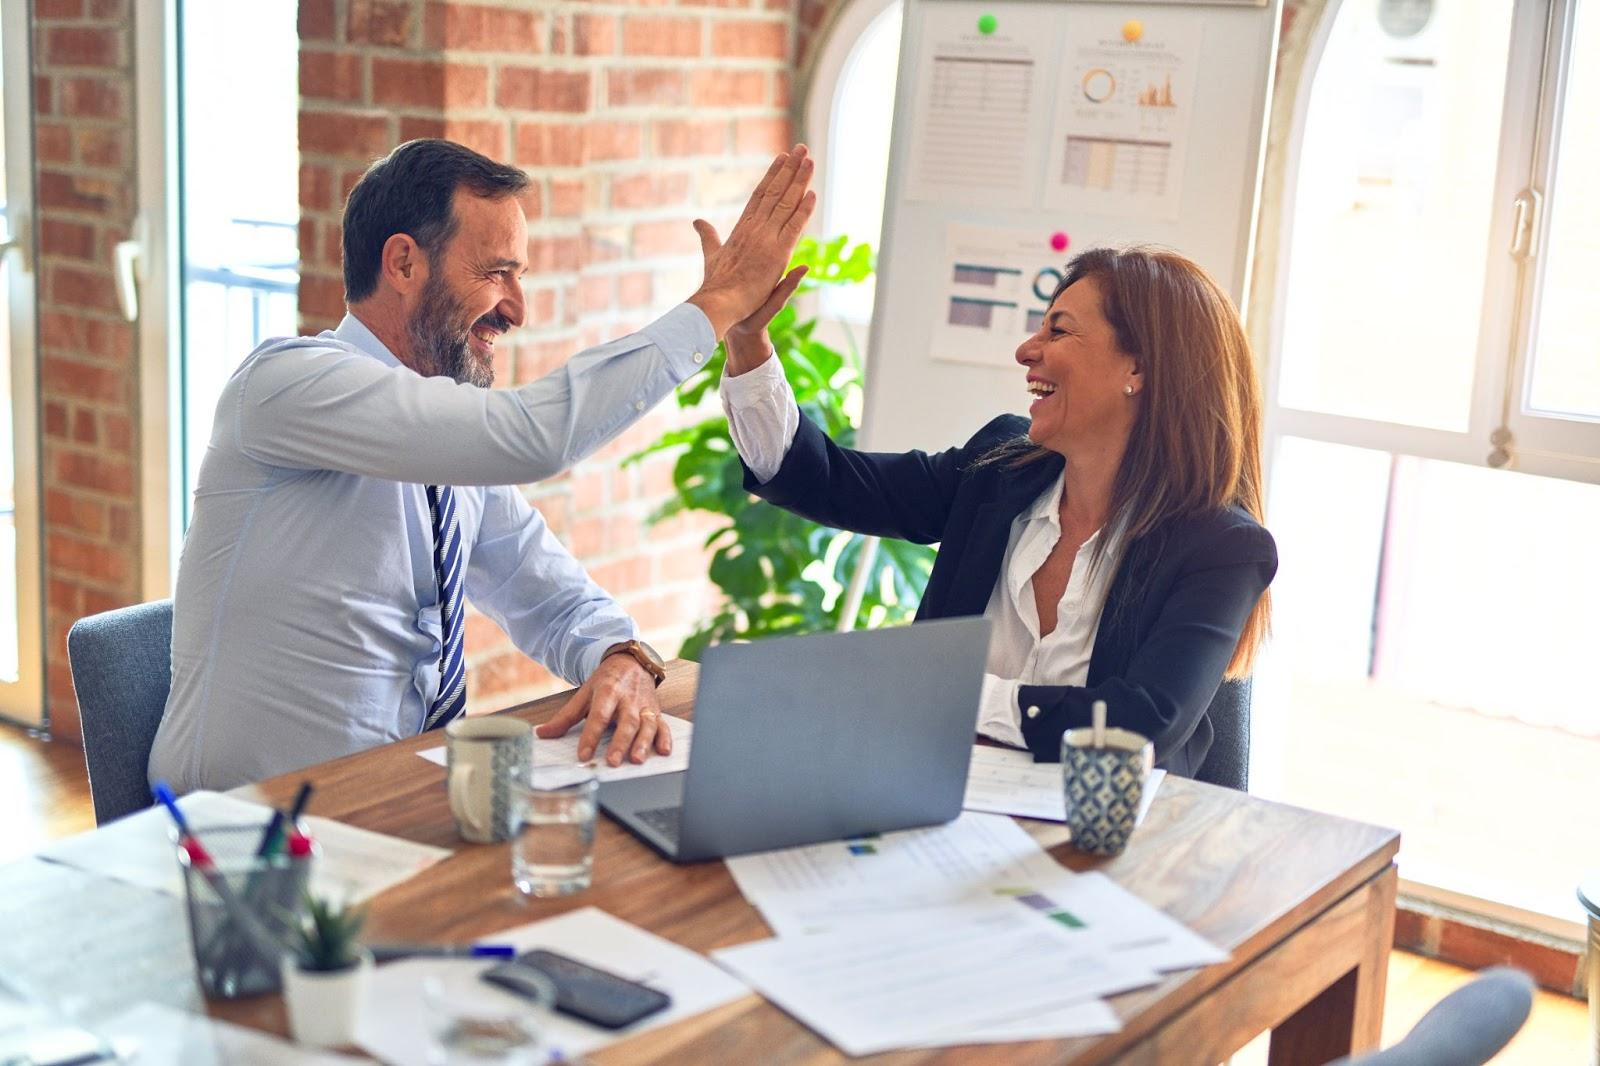 high five between male and female employee professional success